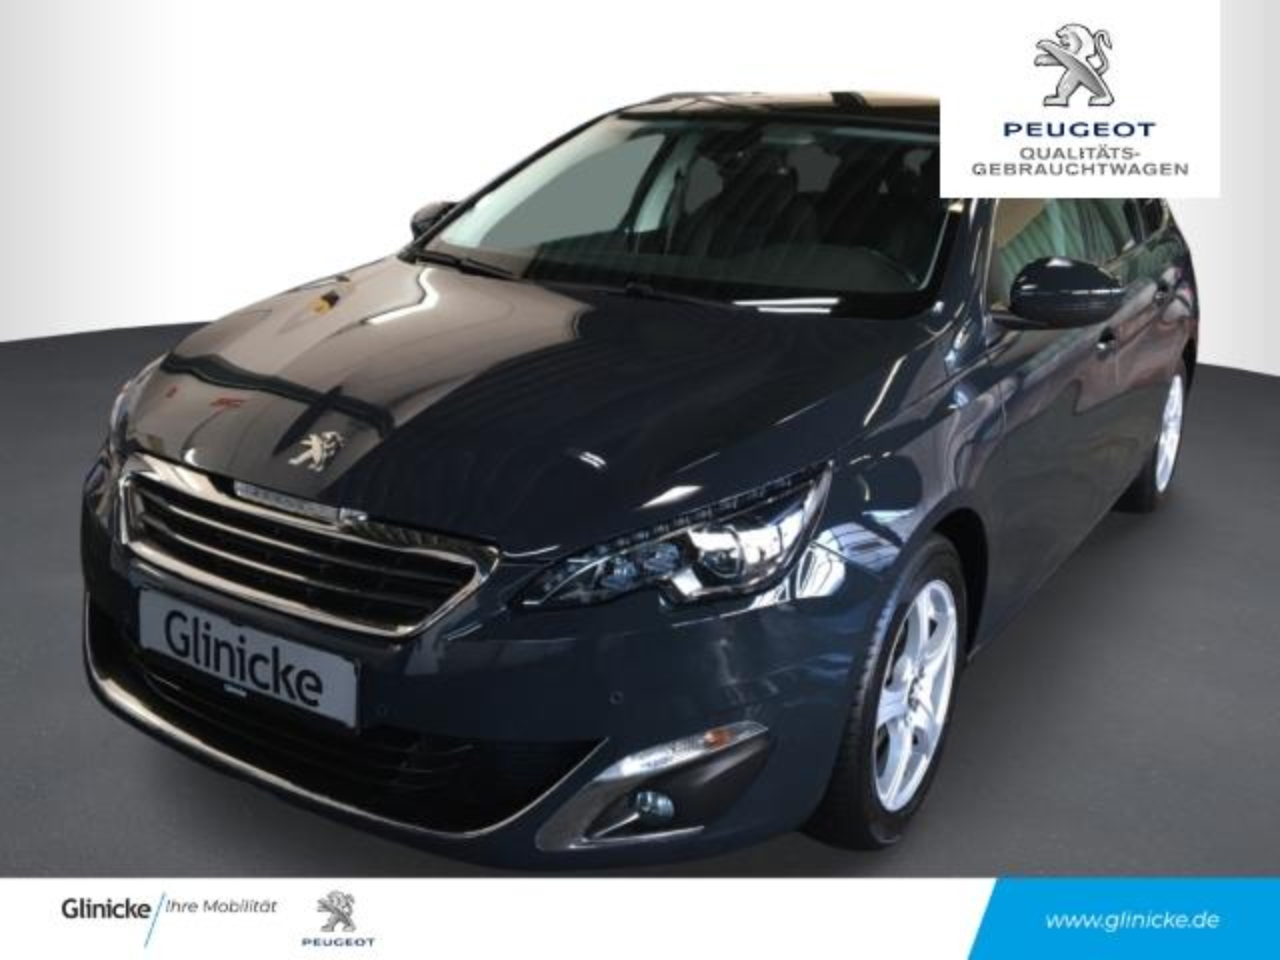 Peugeot 308 SW Allure 1.2 e-THP PureTech 130 LED Panorama PDCv+h